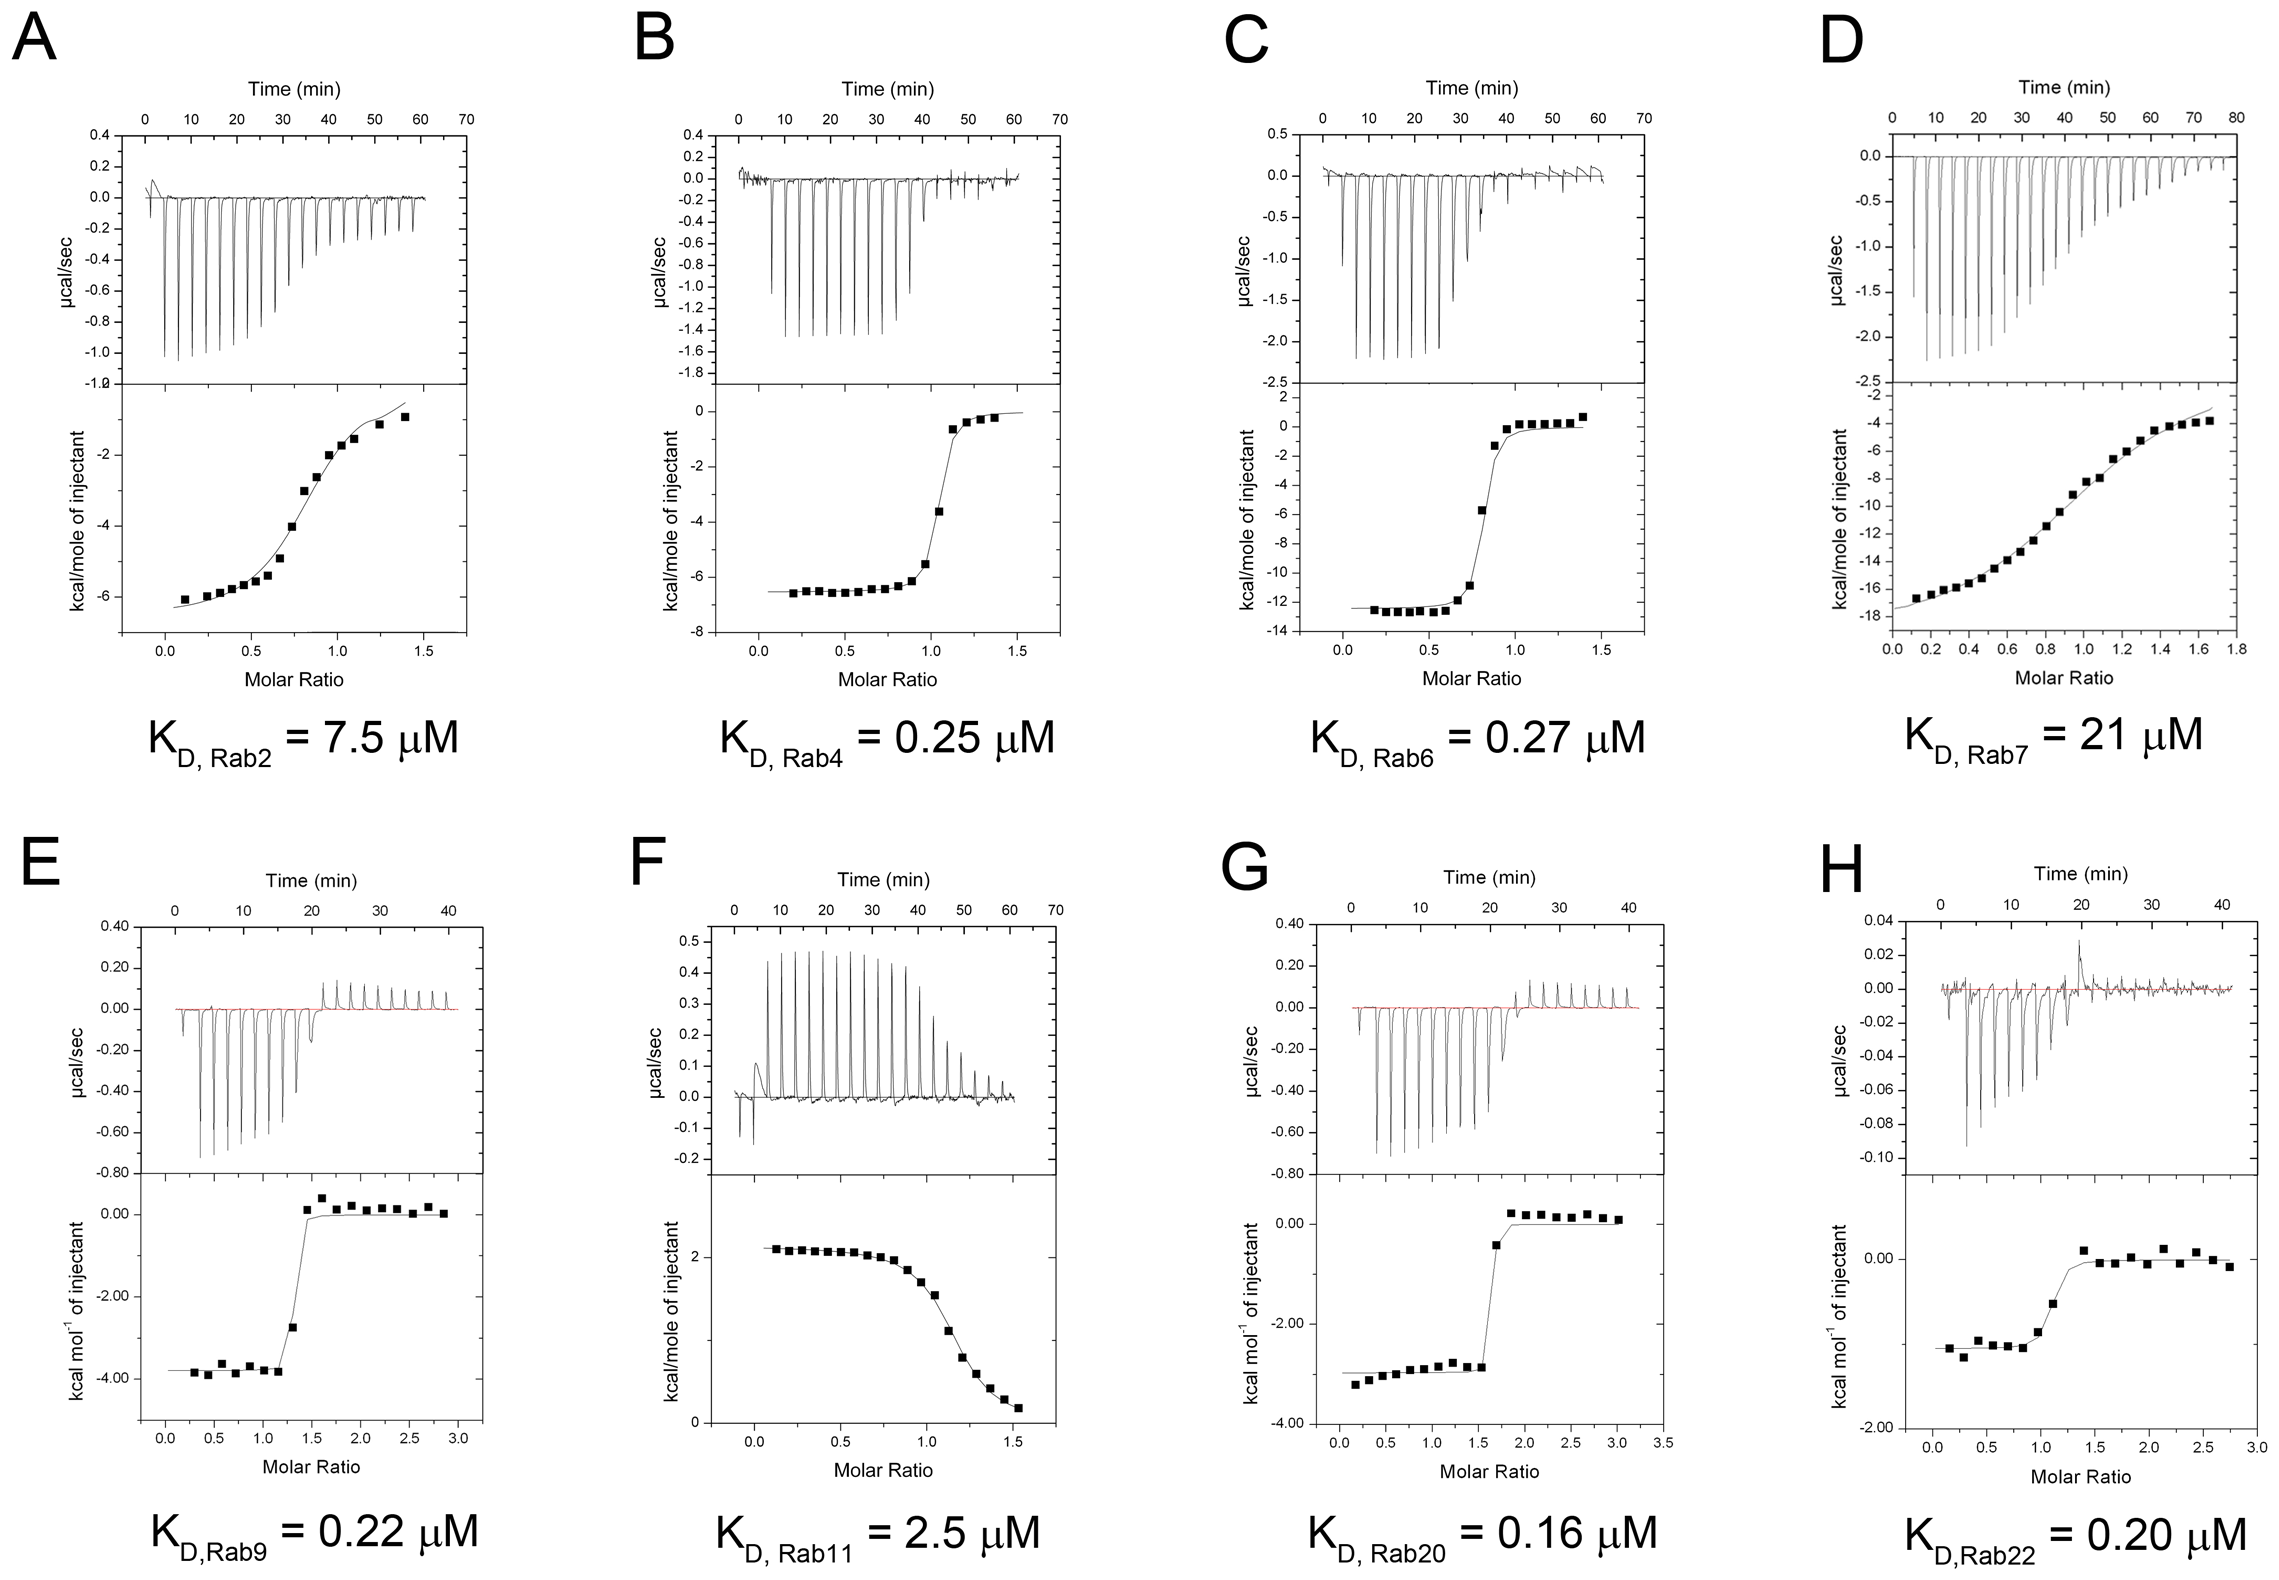 Measurement of binding affinity between LidA and 9 kinds of Rabs by ITC.